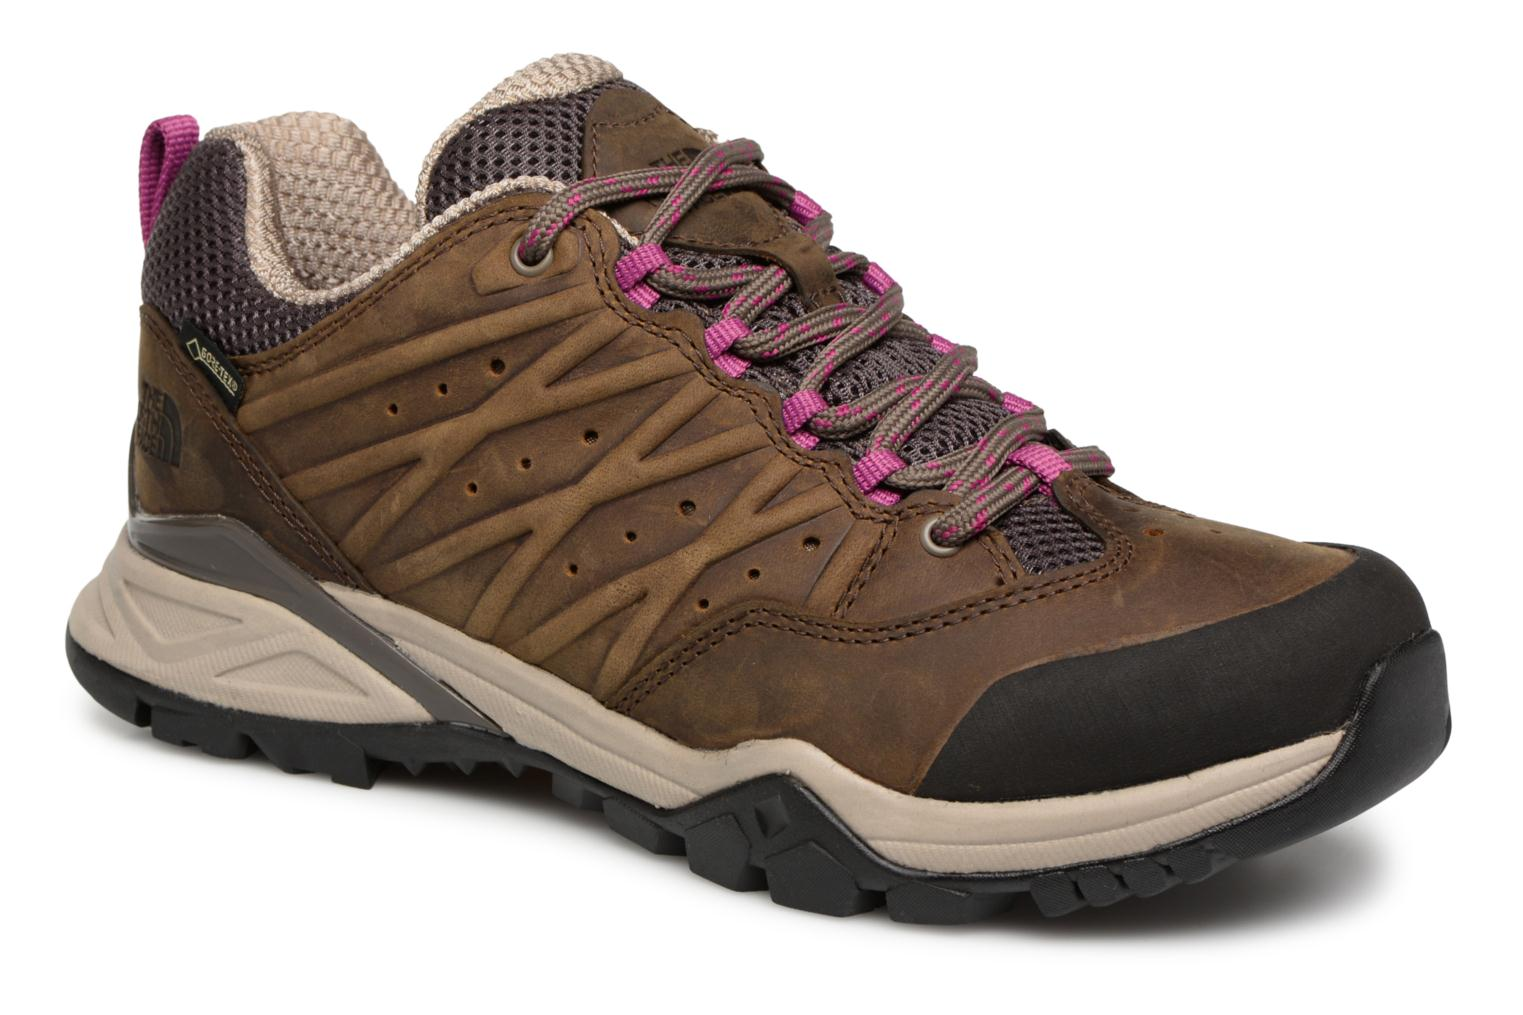 Gtx Face North The Ii Chaussures Sport marron Hedgehog De W Hike r5X57qPd